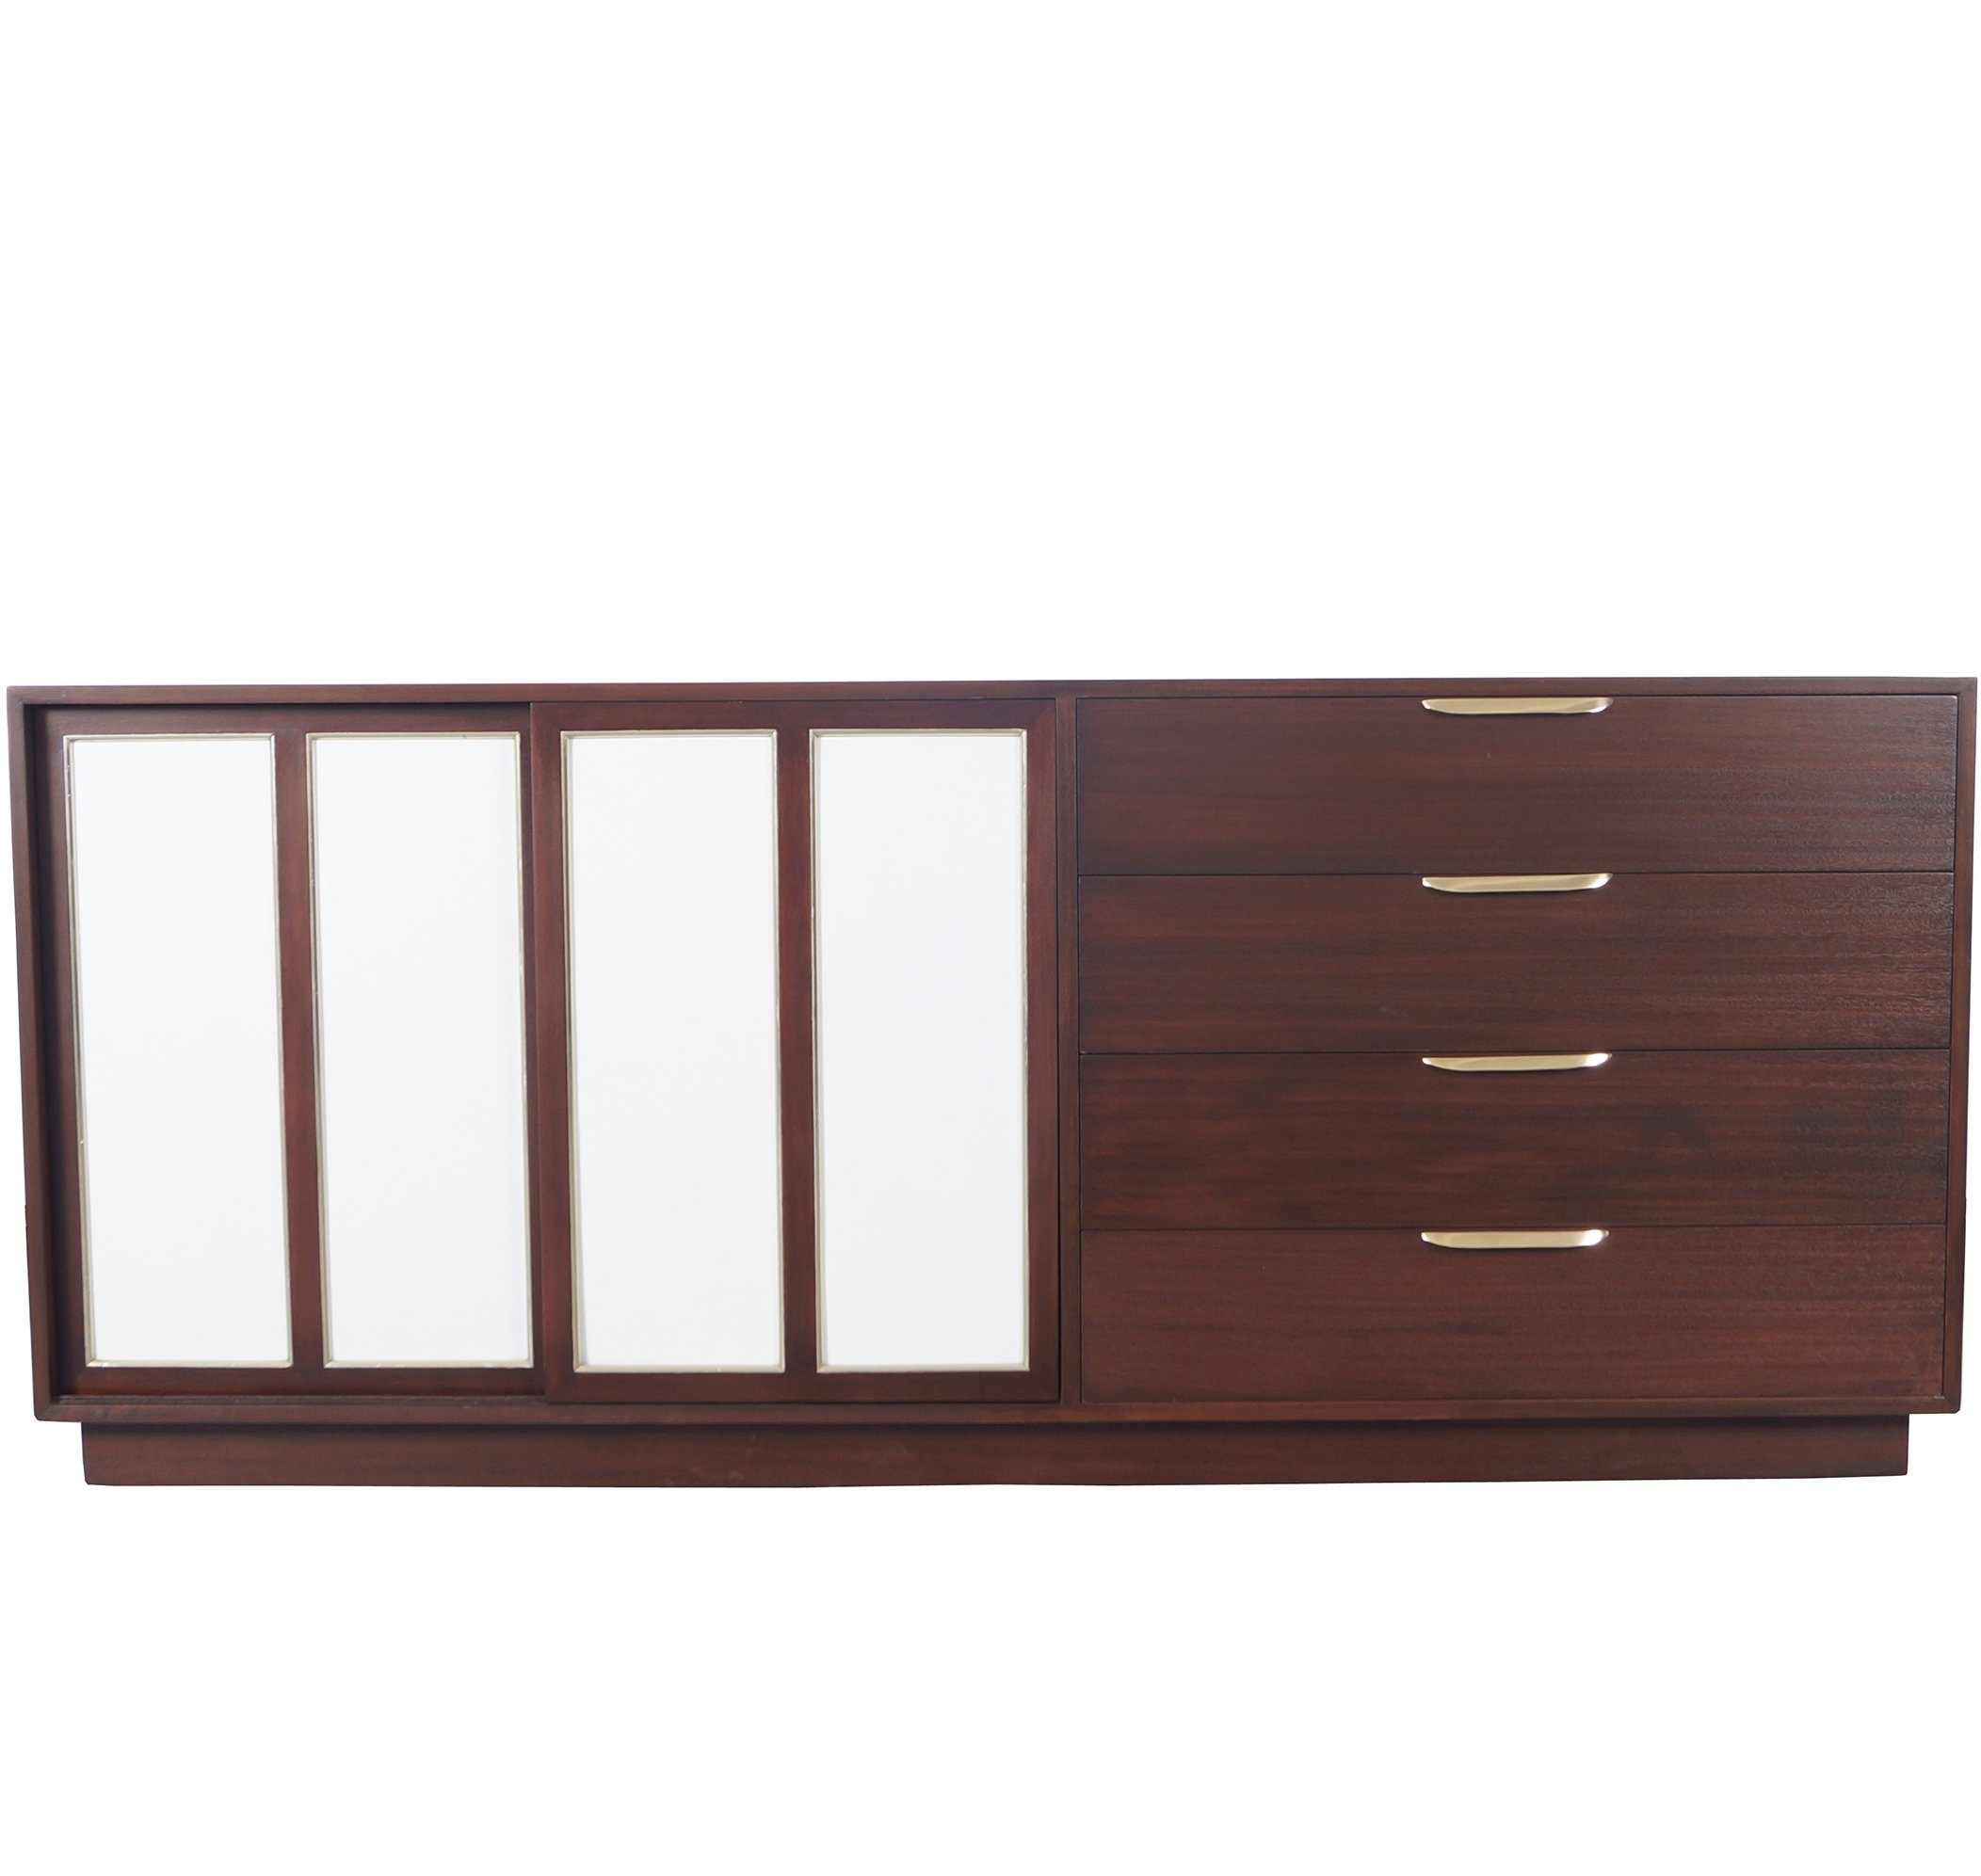 Striking 'intarsia' Sideboard With A Vintage Designaldo Rossi intended for Rossi Large Sideboards (Image 24 of 30)